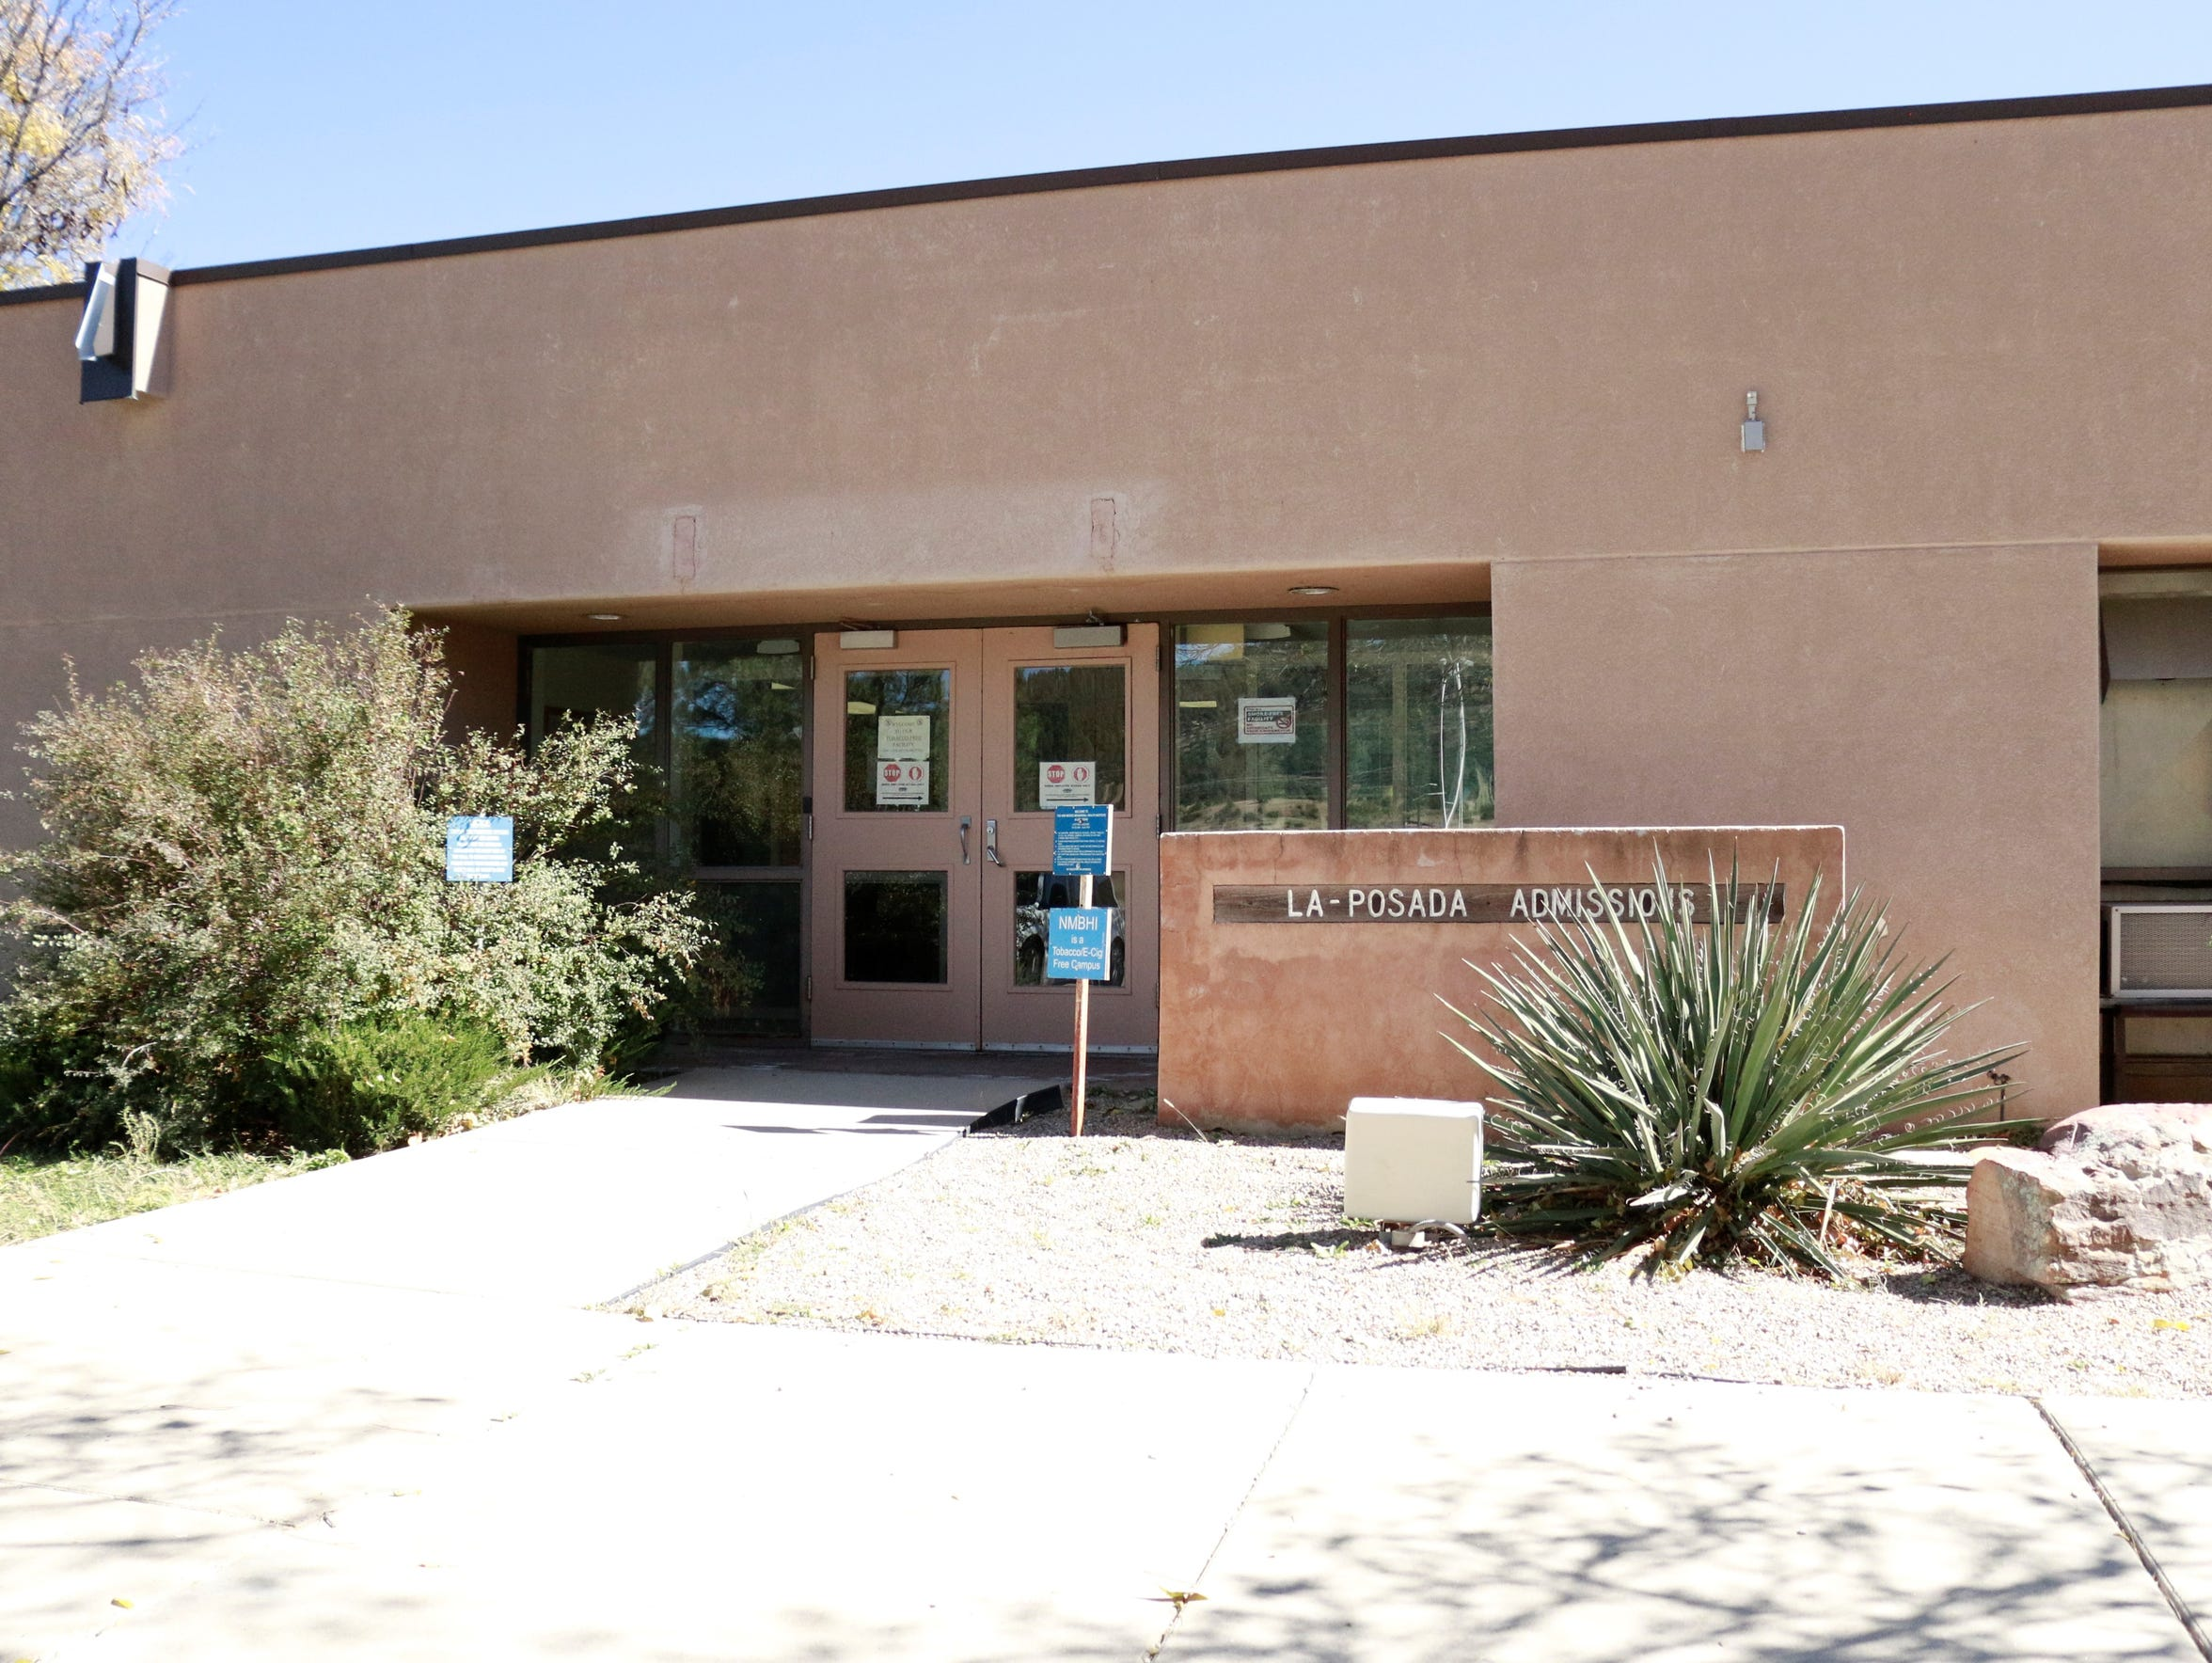 Last year, 72 Doña Ana County residents were admitted